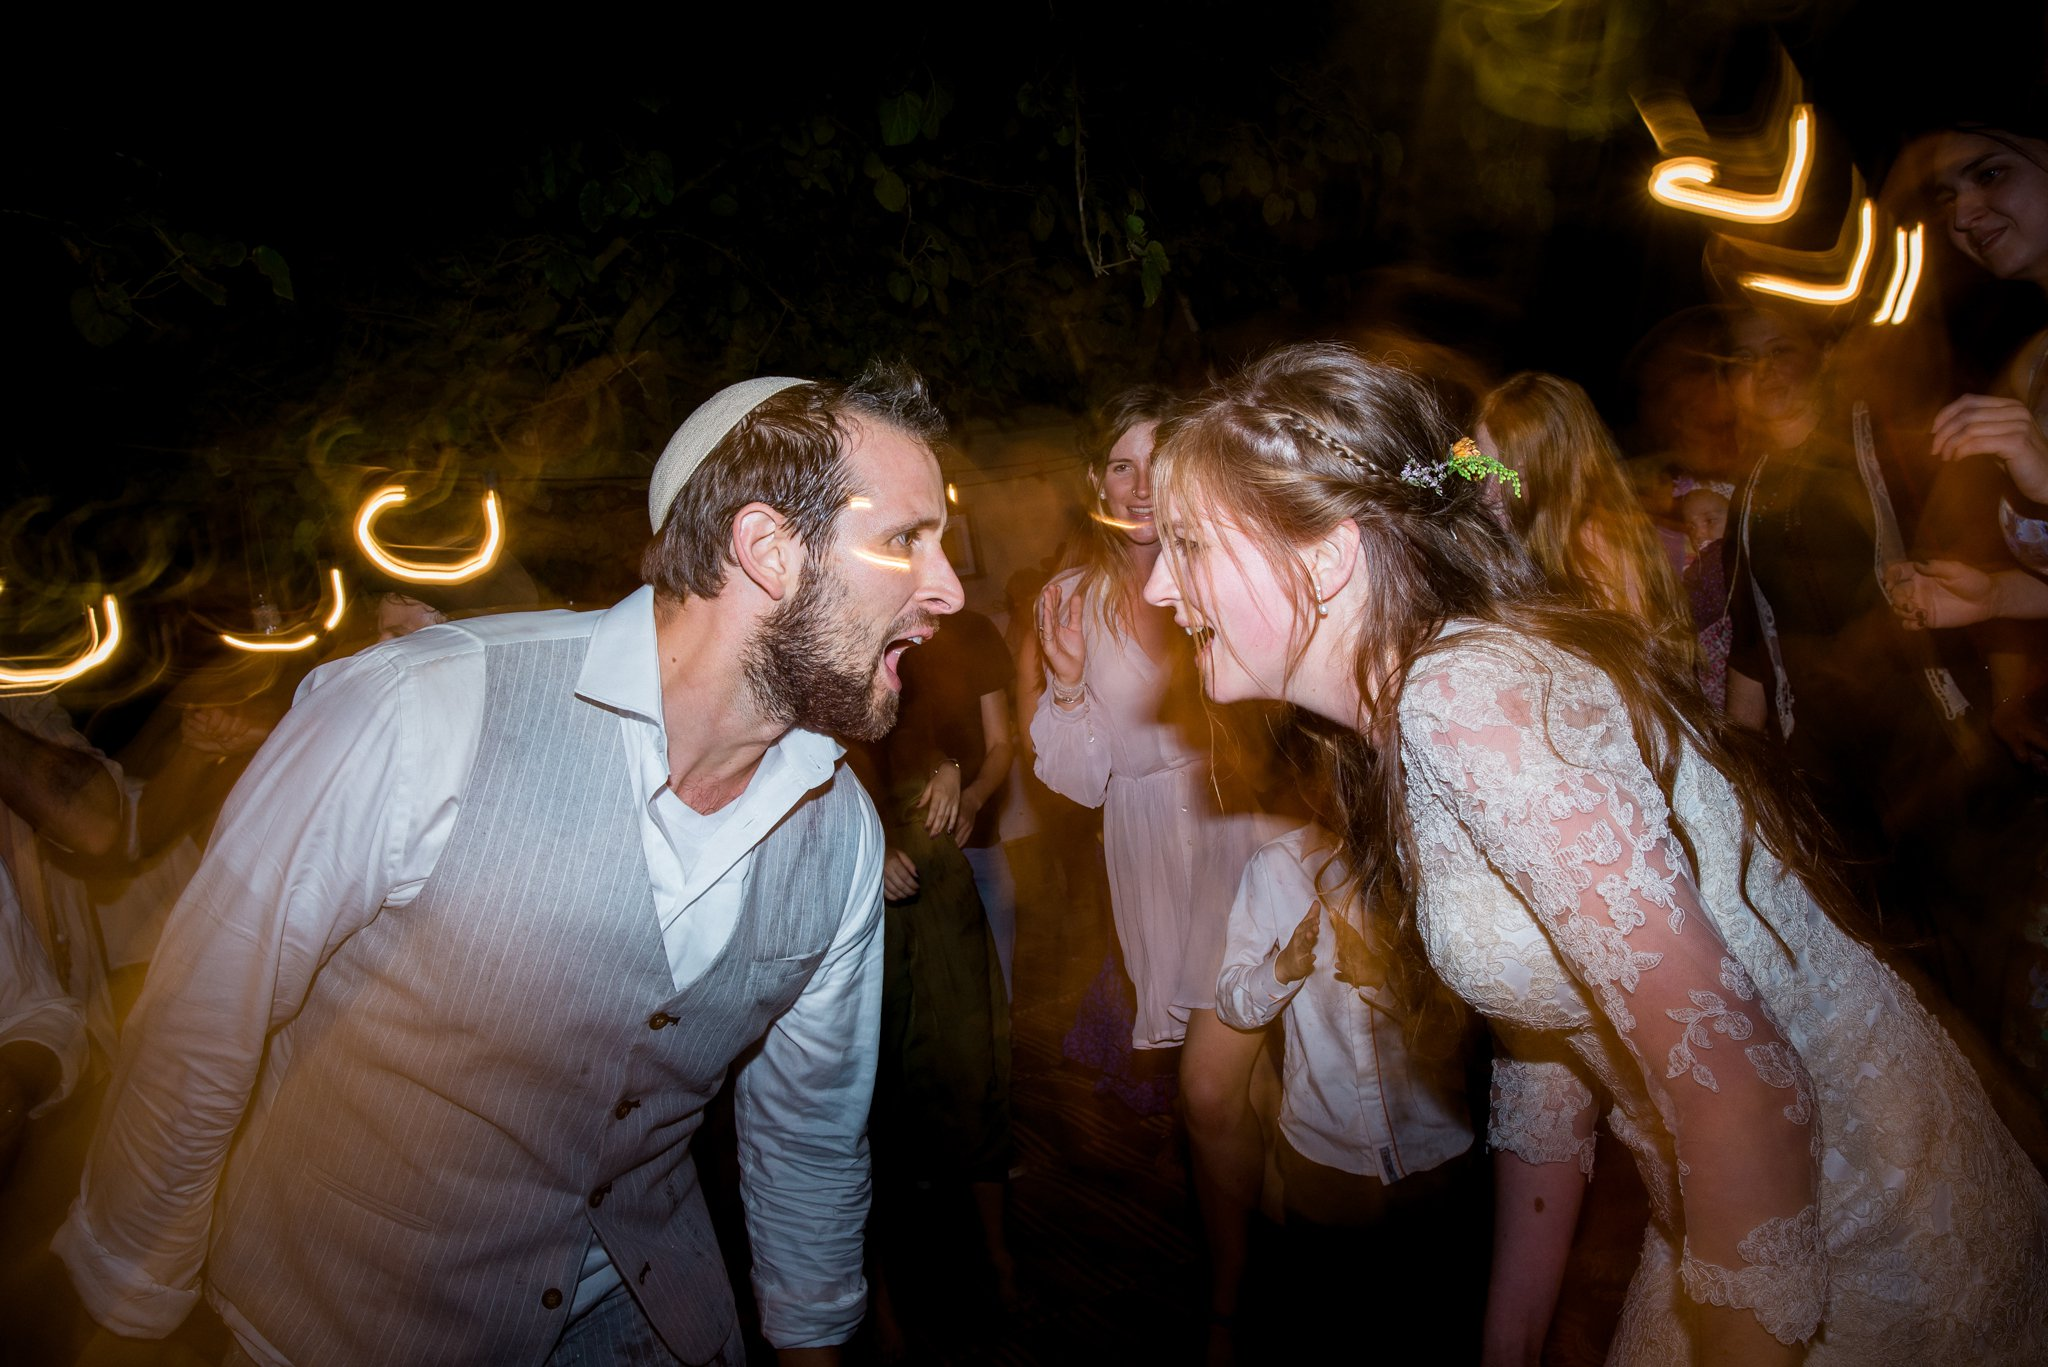 jewish-wedding-binyamina-israel-kate-giryes-photography-289_WEB.jpg